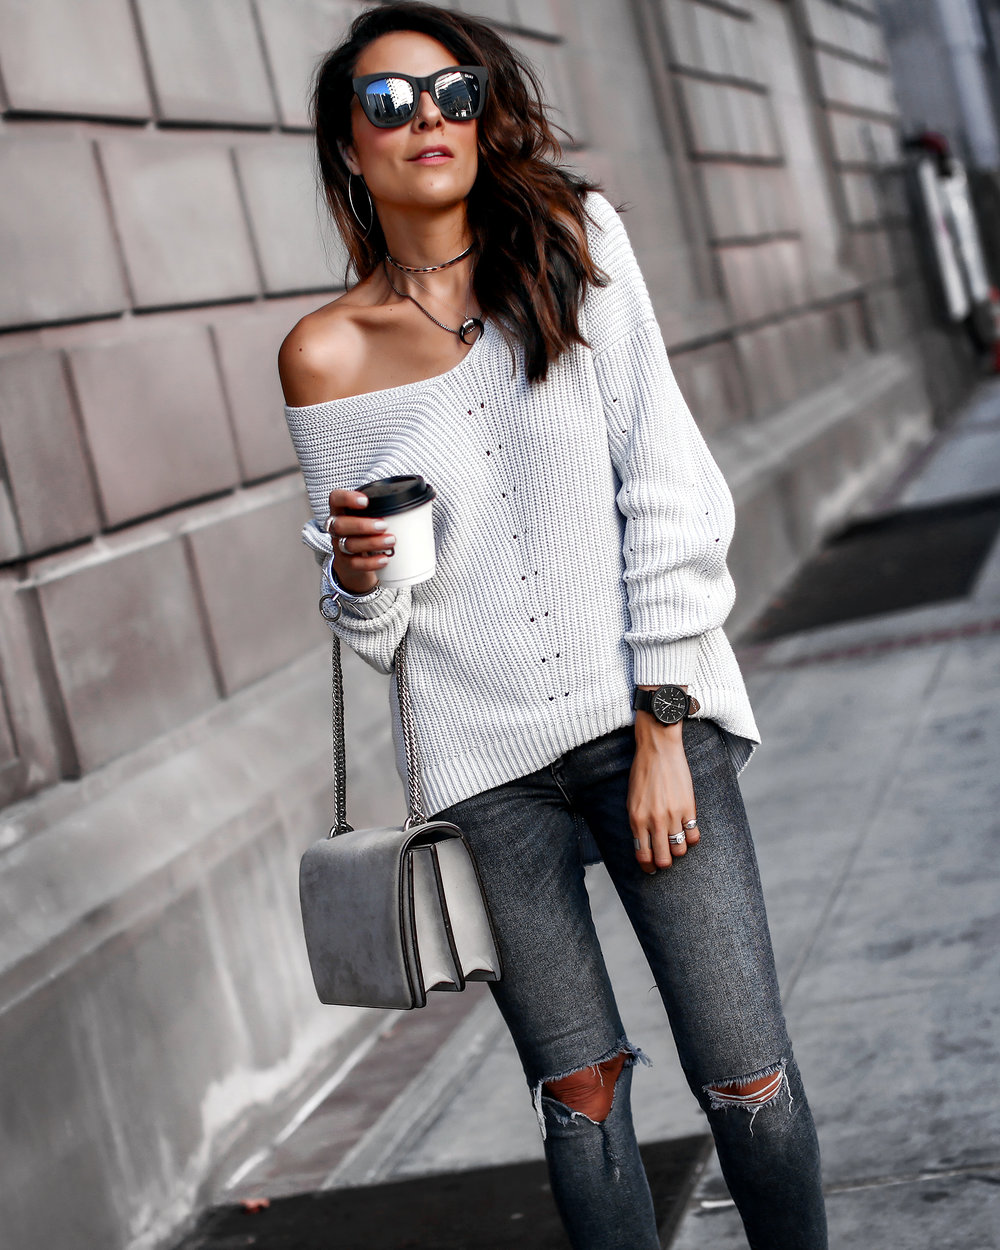 Lucys Whims Brunnette Woman Wearing Off the Shoulder 525 Sweater DL1961 Ripped Jeans Agneel Shoulder Bag.jpg